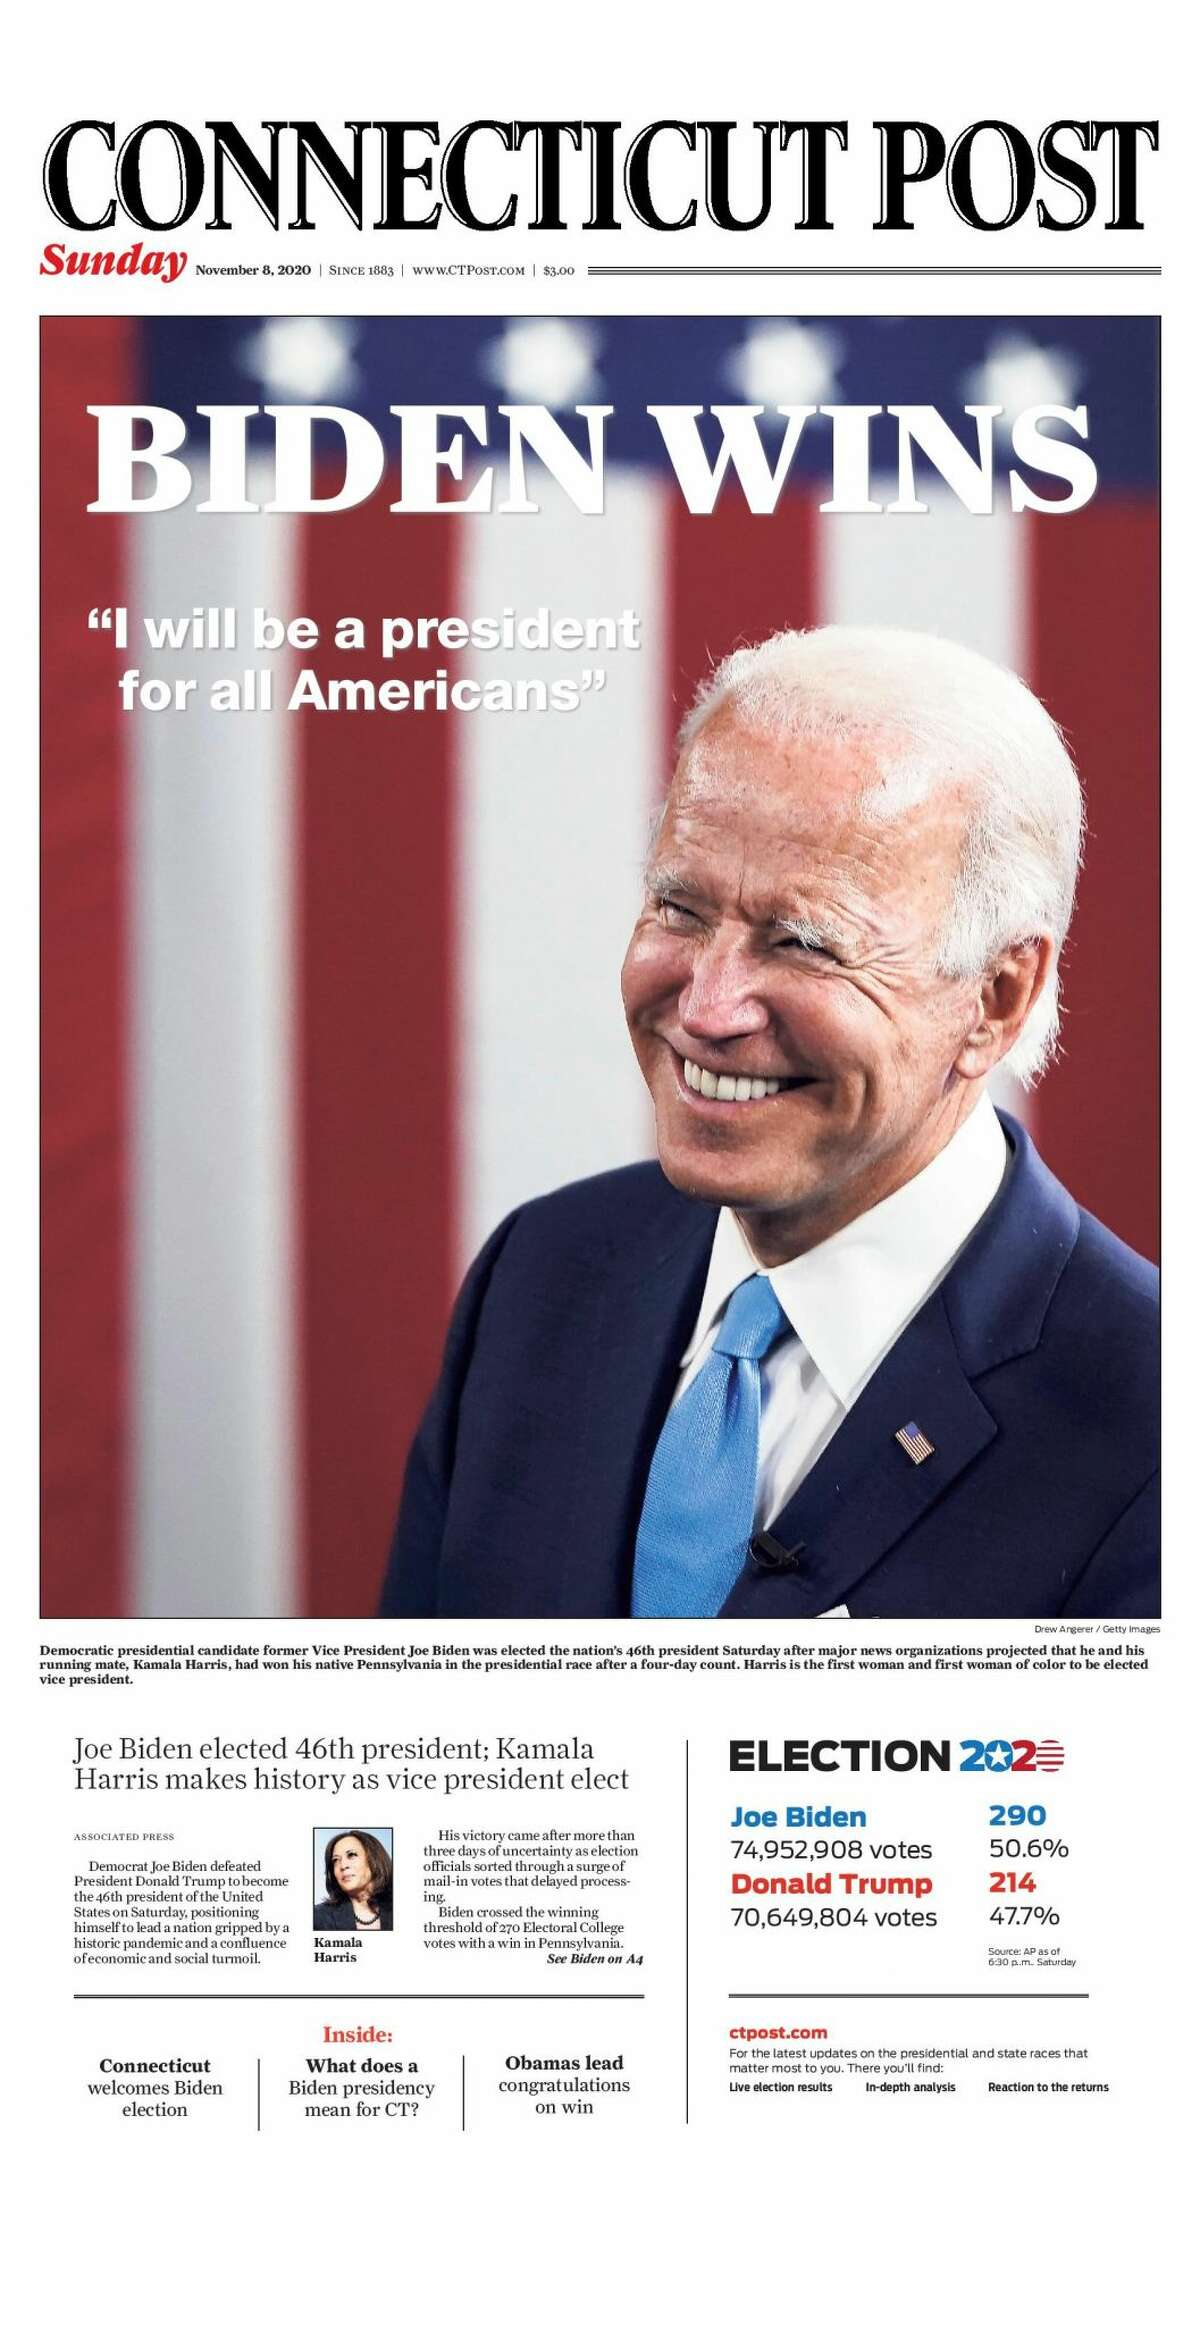 The Connecticut Post's front page, Nov. 8, 2020.